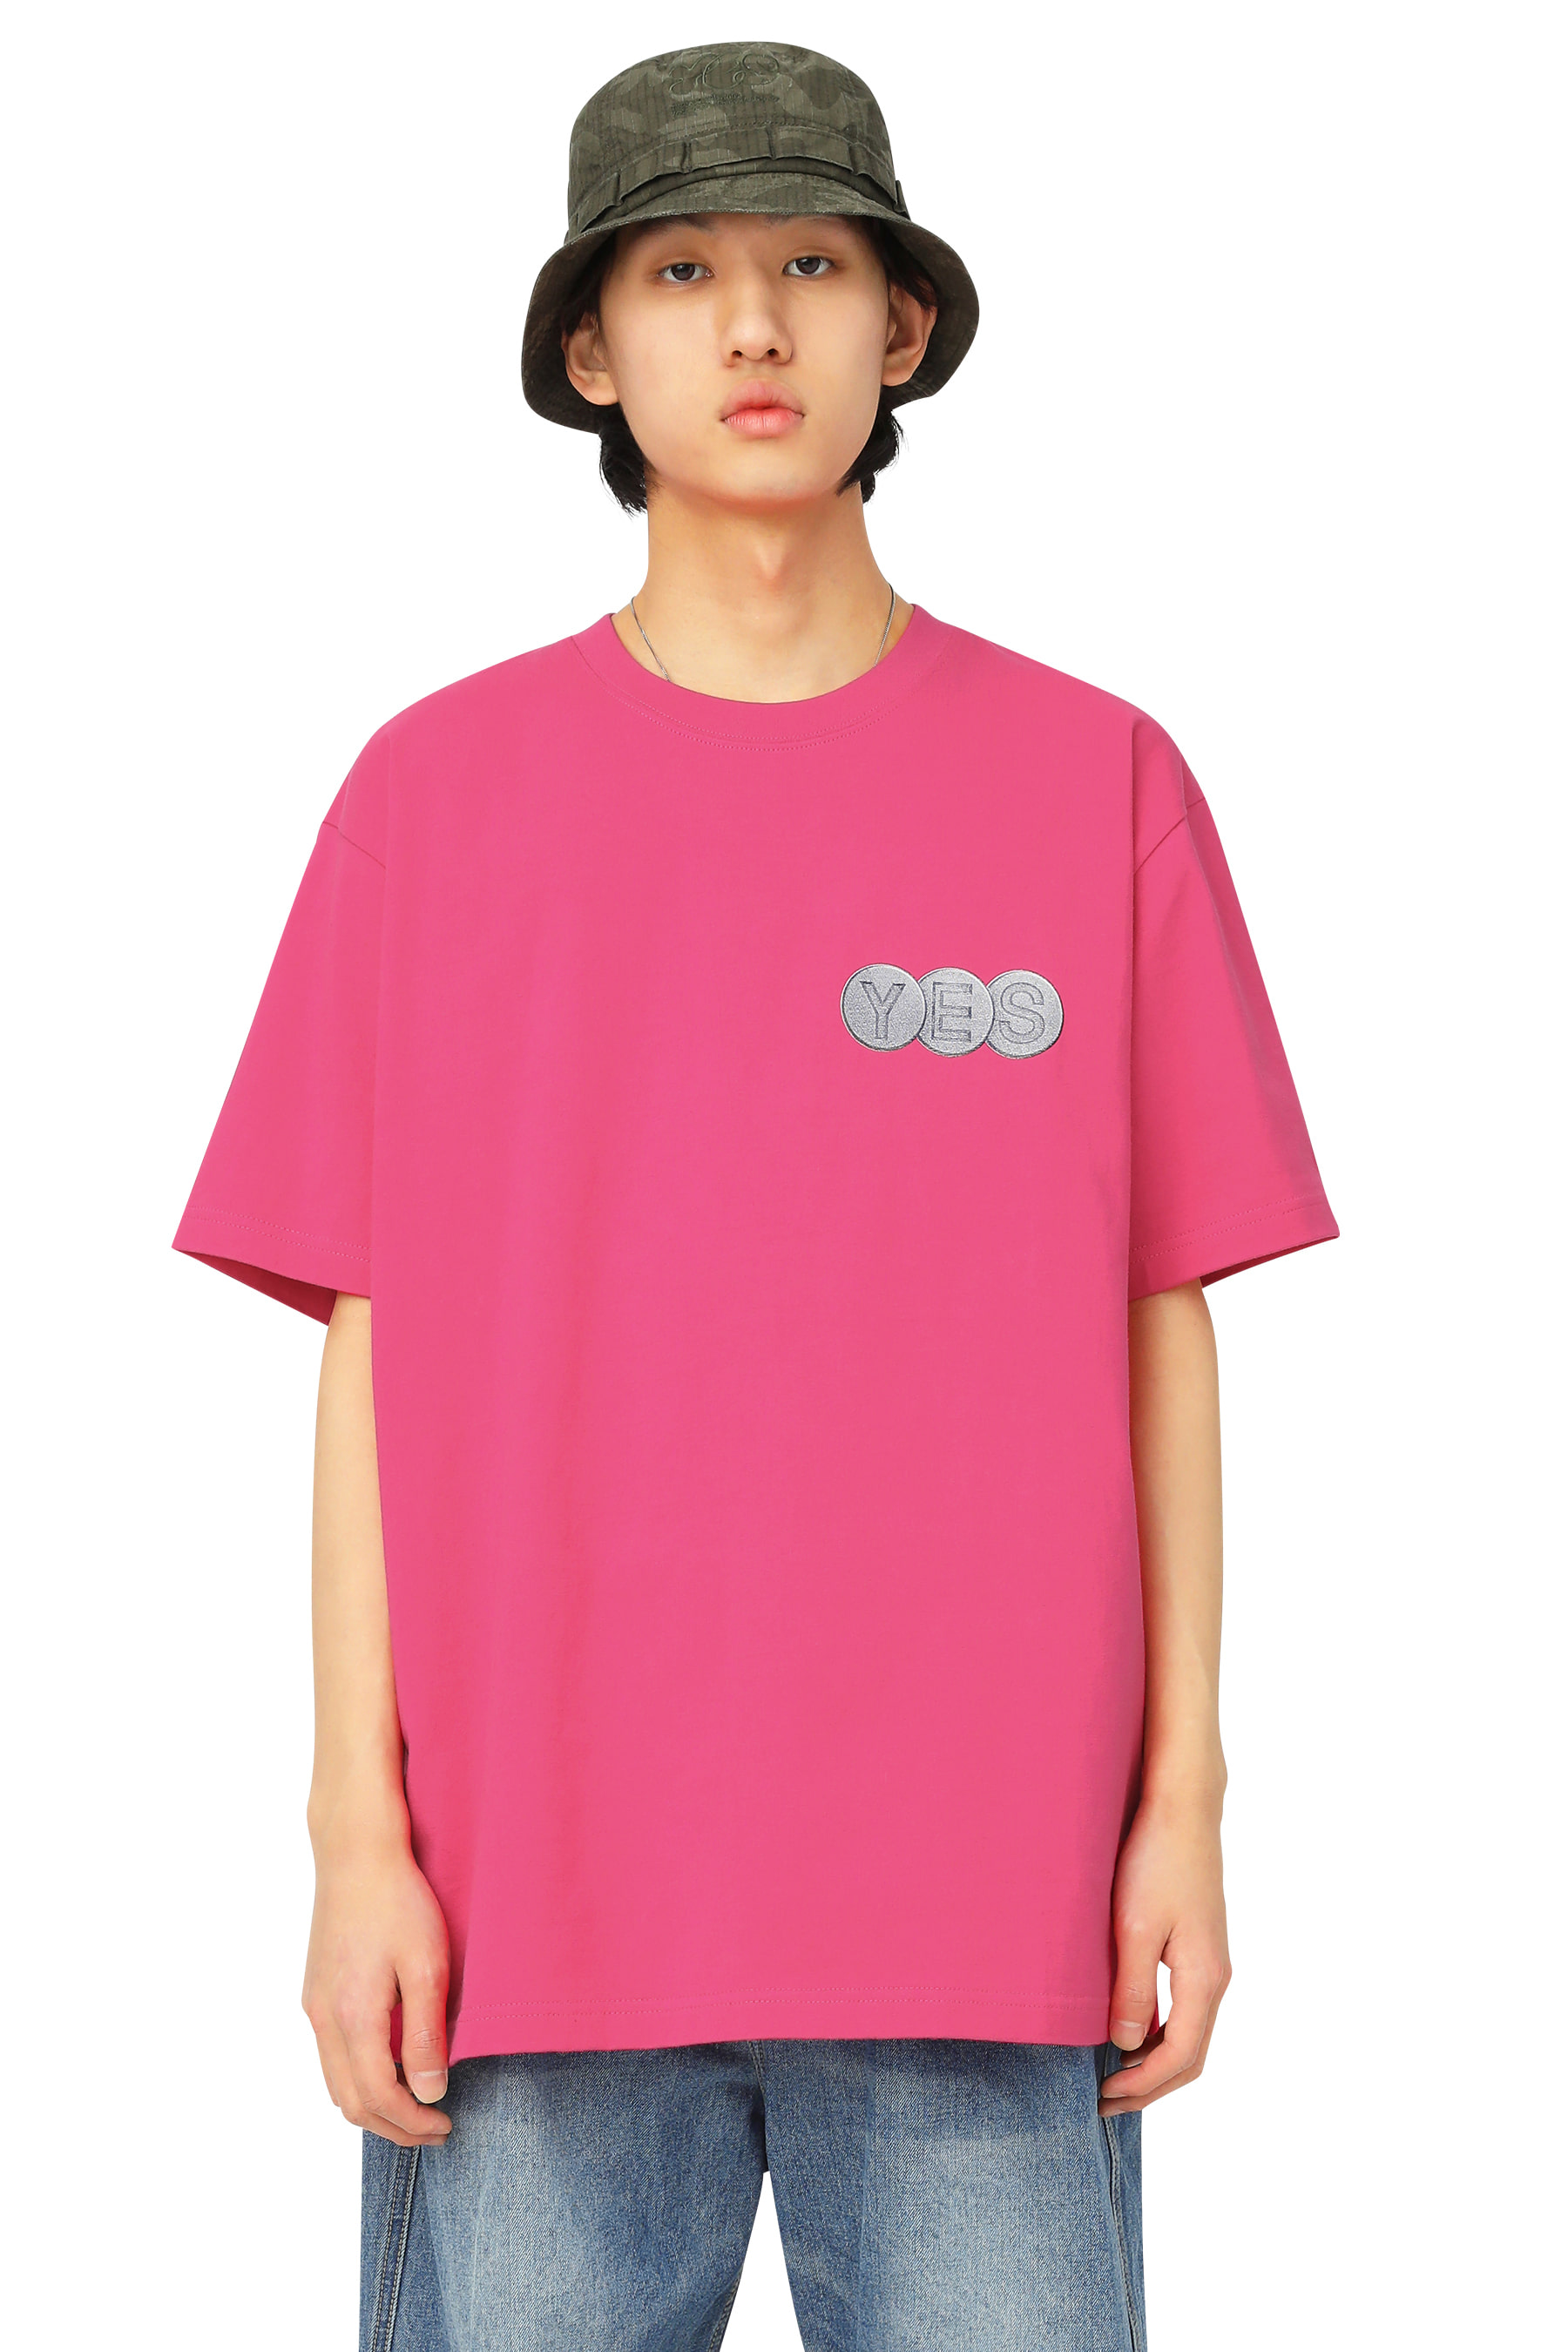 Y.E.S Screw Tee Pink